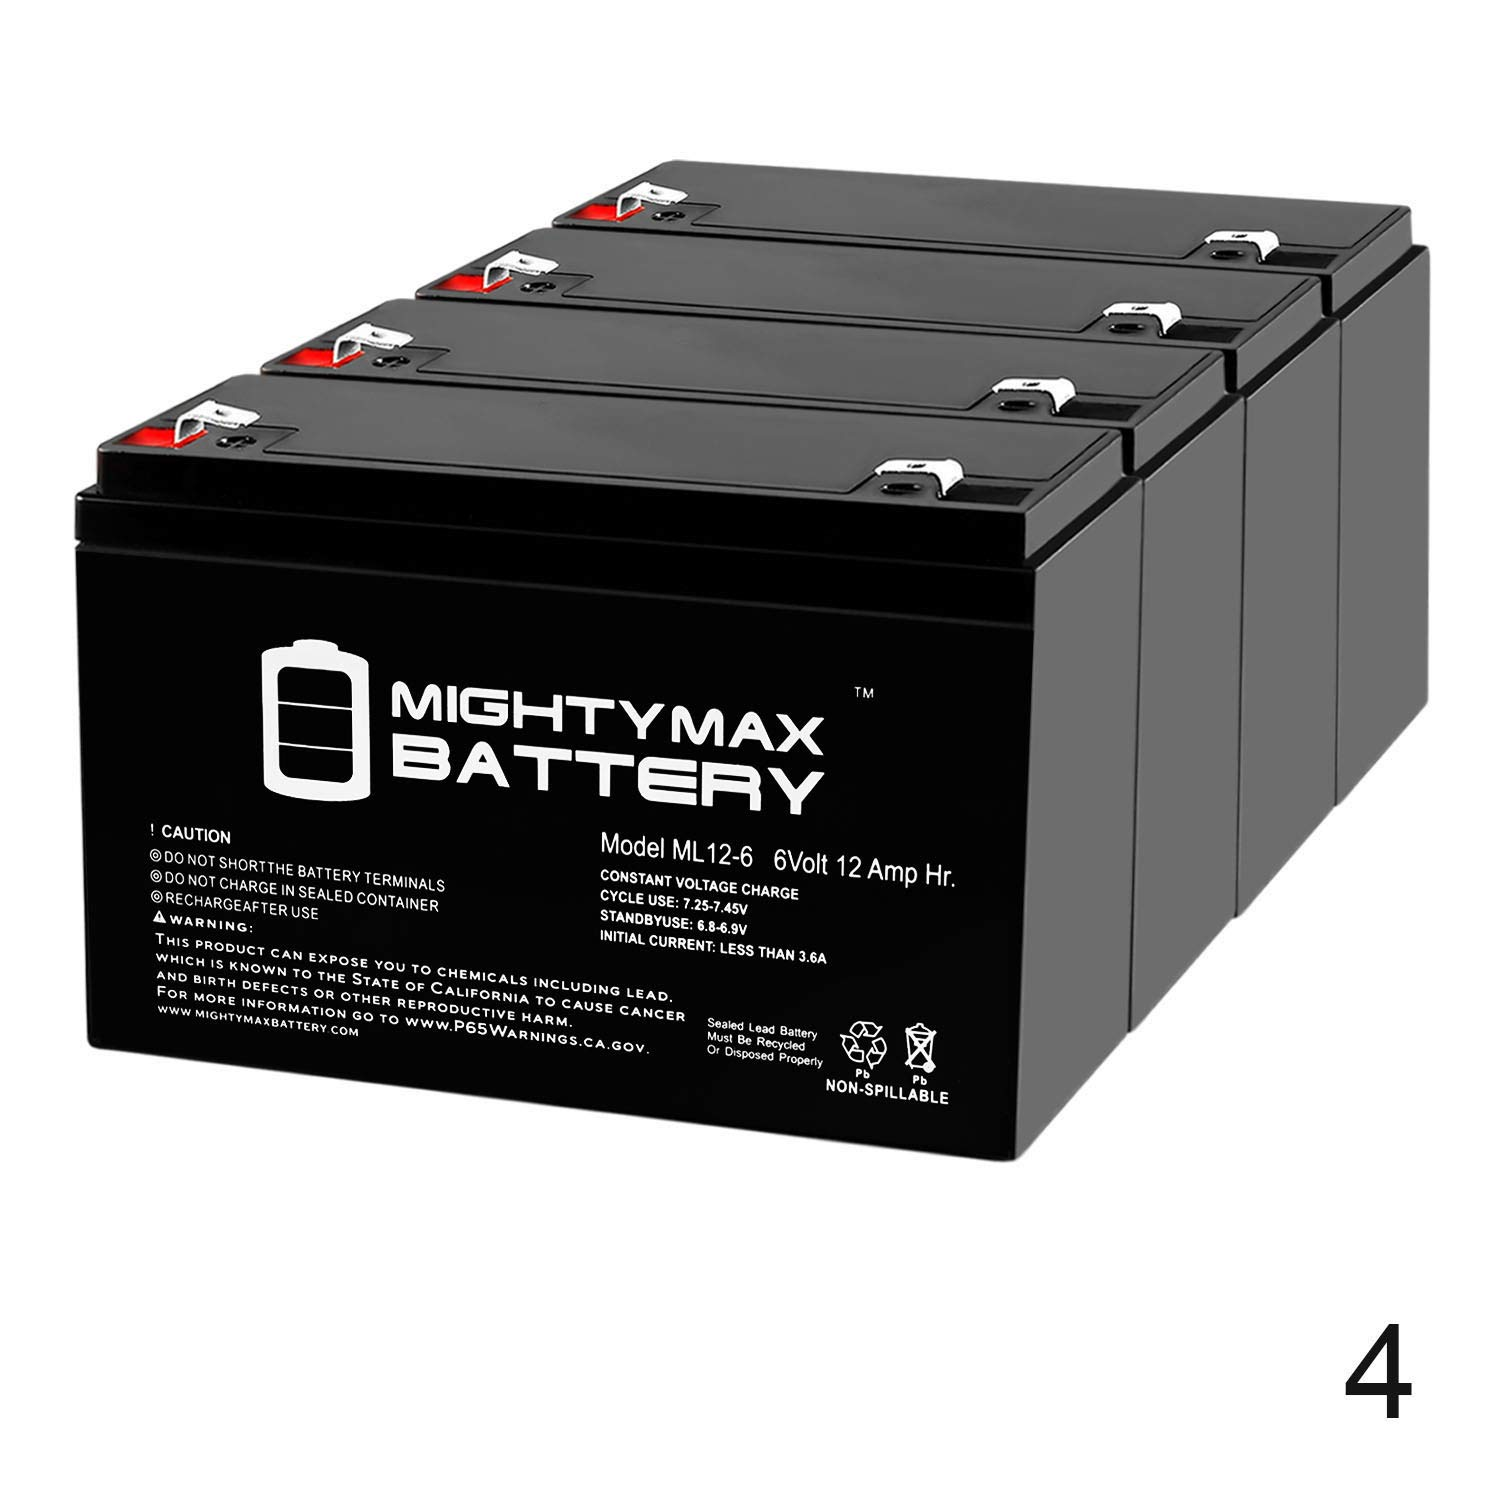 Mighty Max Battery 6V 12AH F2 SLA Battery for National Battery NB6-12HR - 4 Pack Brand Product by Mighty Max Battery